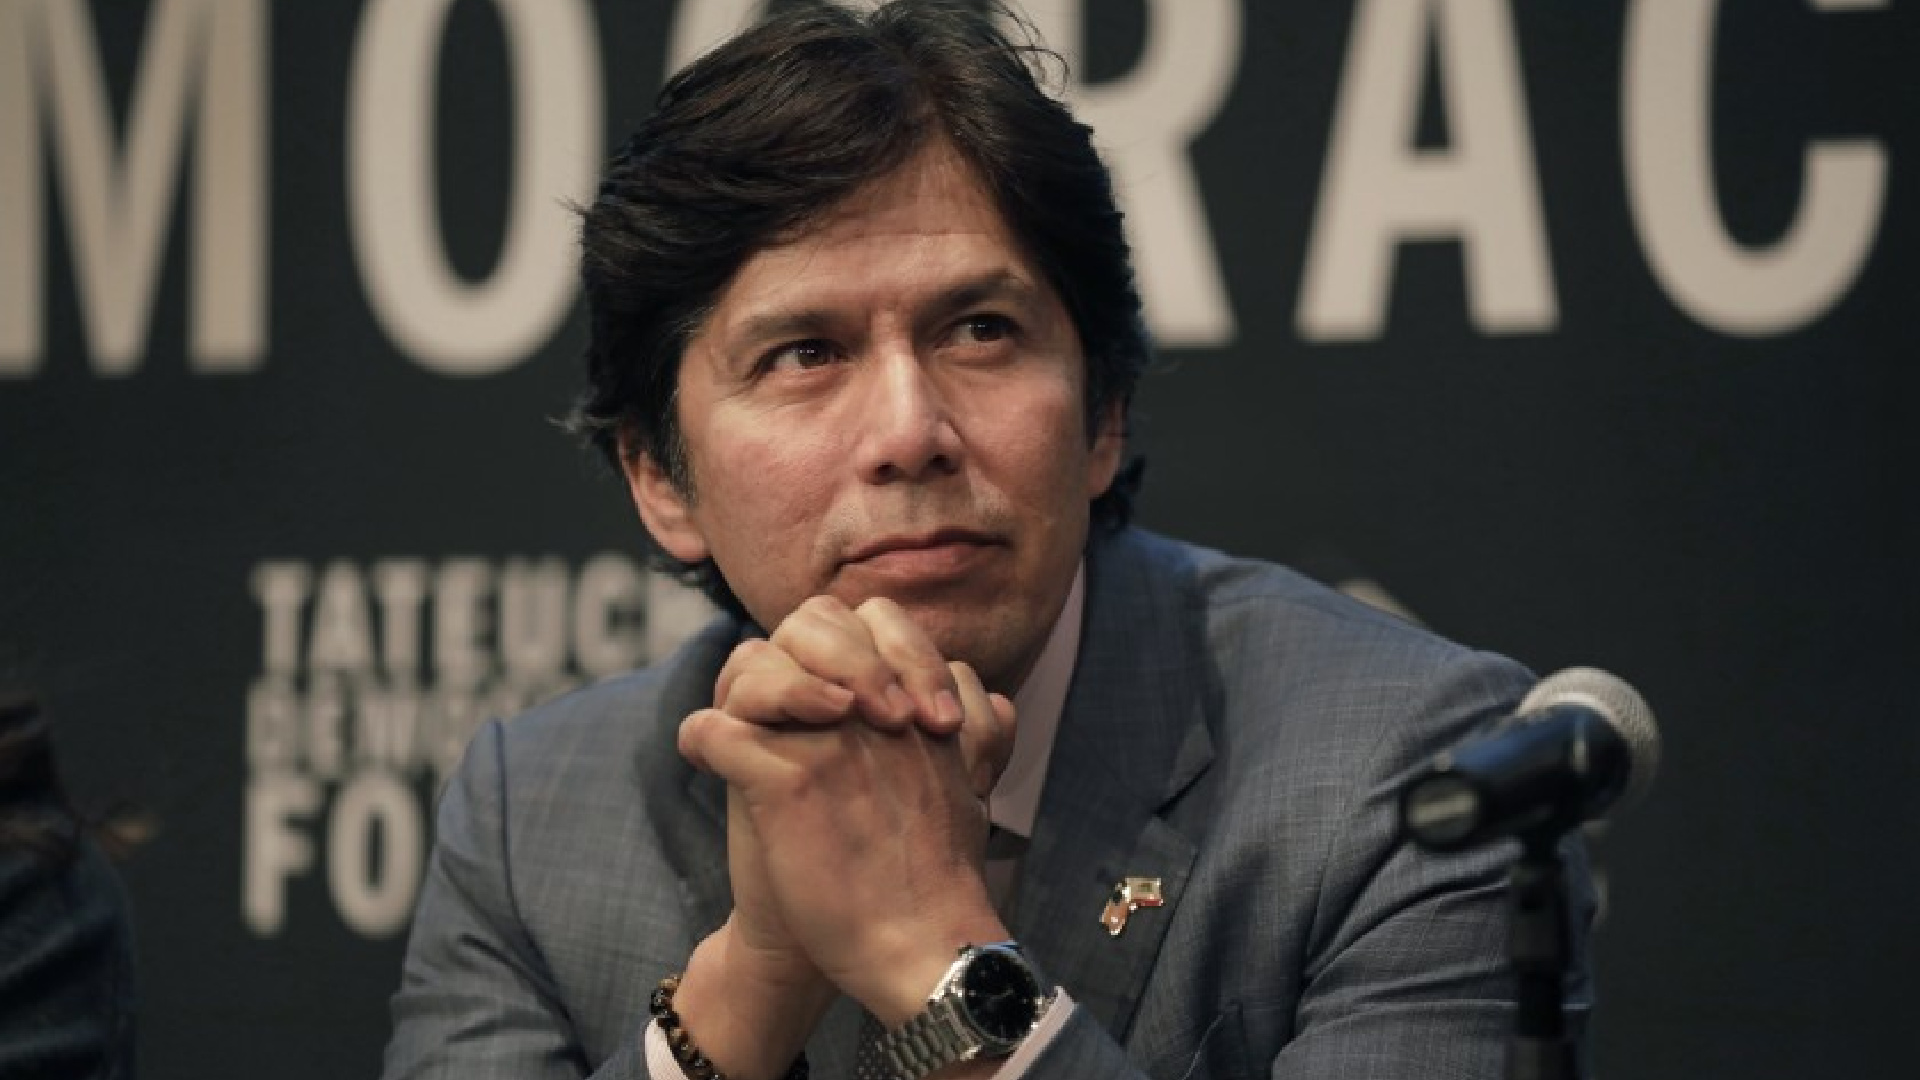 Former State Sen. Kevin de León won a March race to represent the district.(Carolyn Cole / Los Angeles Times)